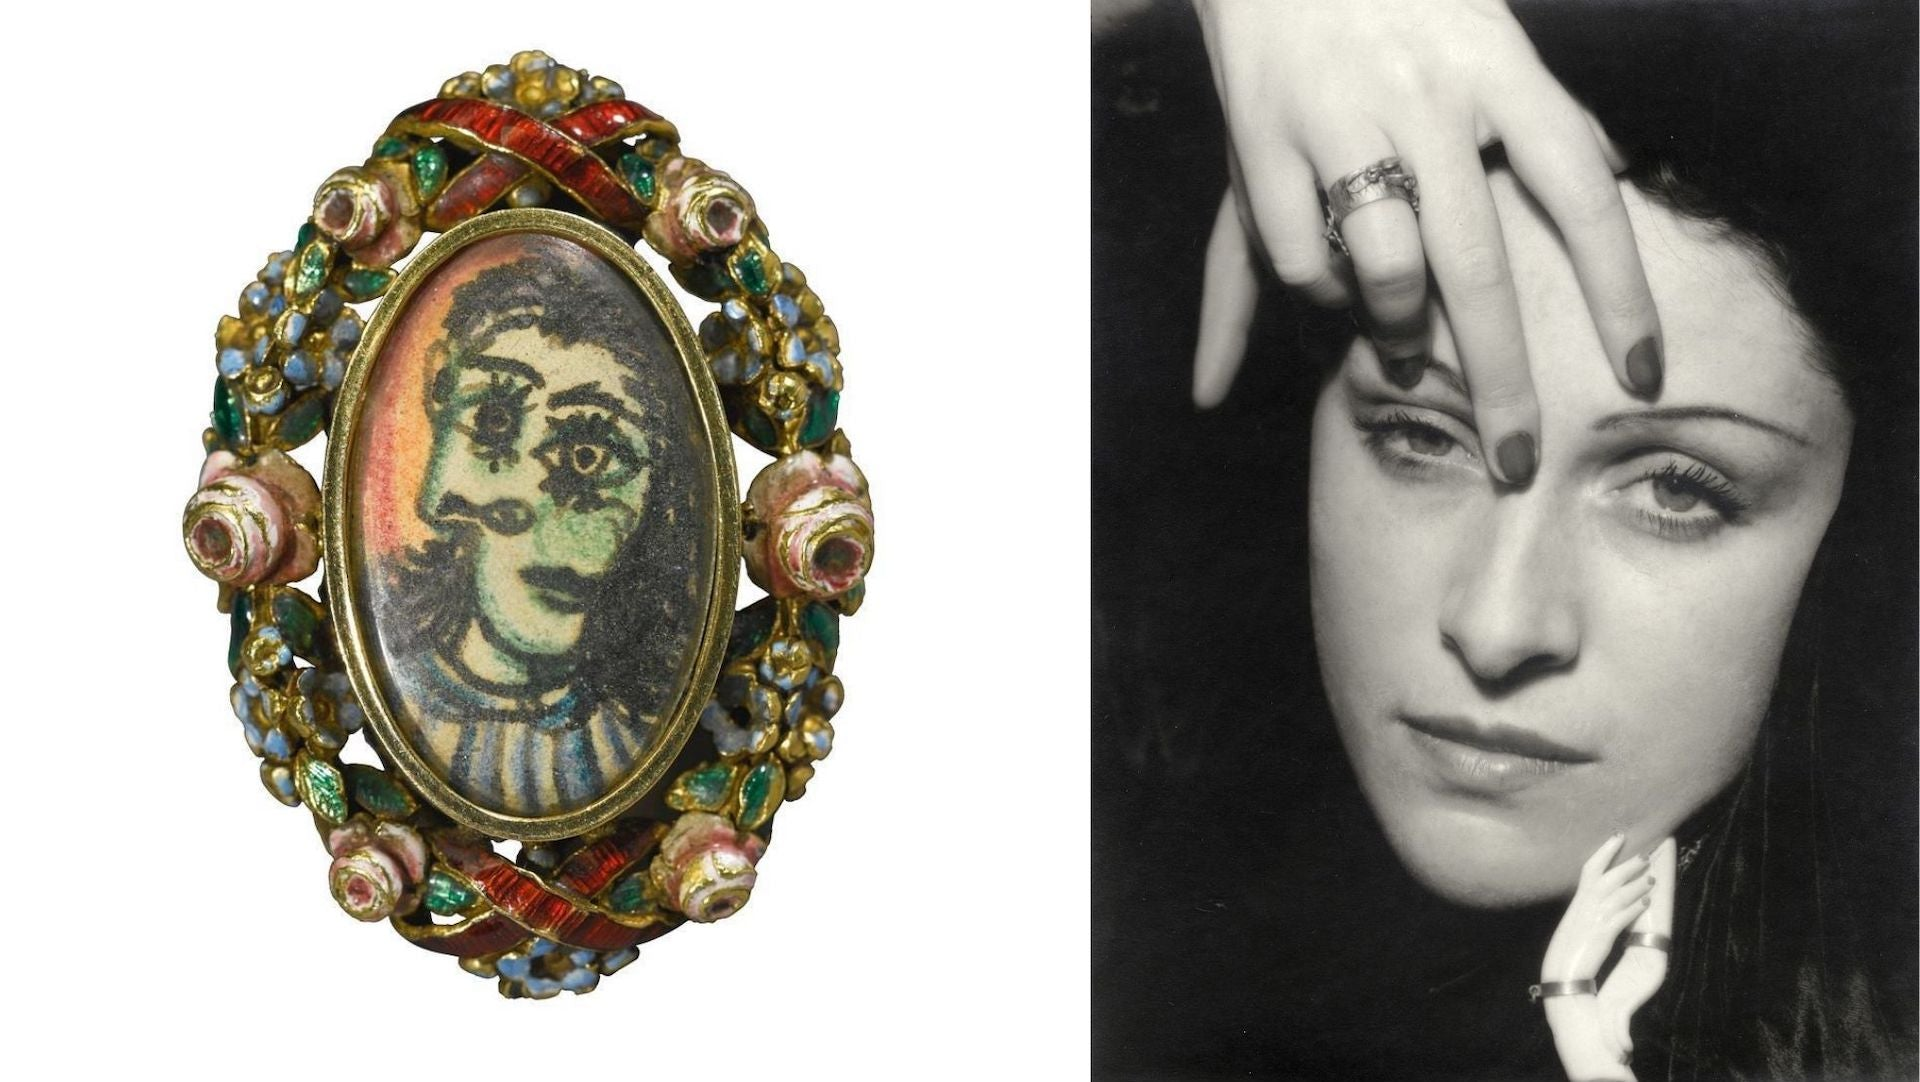 Portrait of Dora Maar Ring by Pablo Picasso, late 1930s. Dora Maar, photographed by Man Ray. Photos courtesy of Didier Ltd.